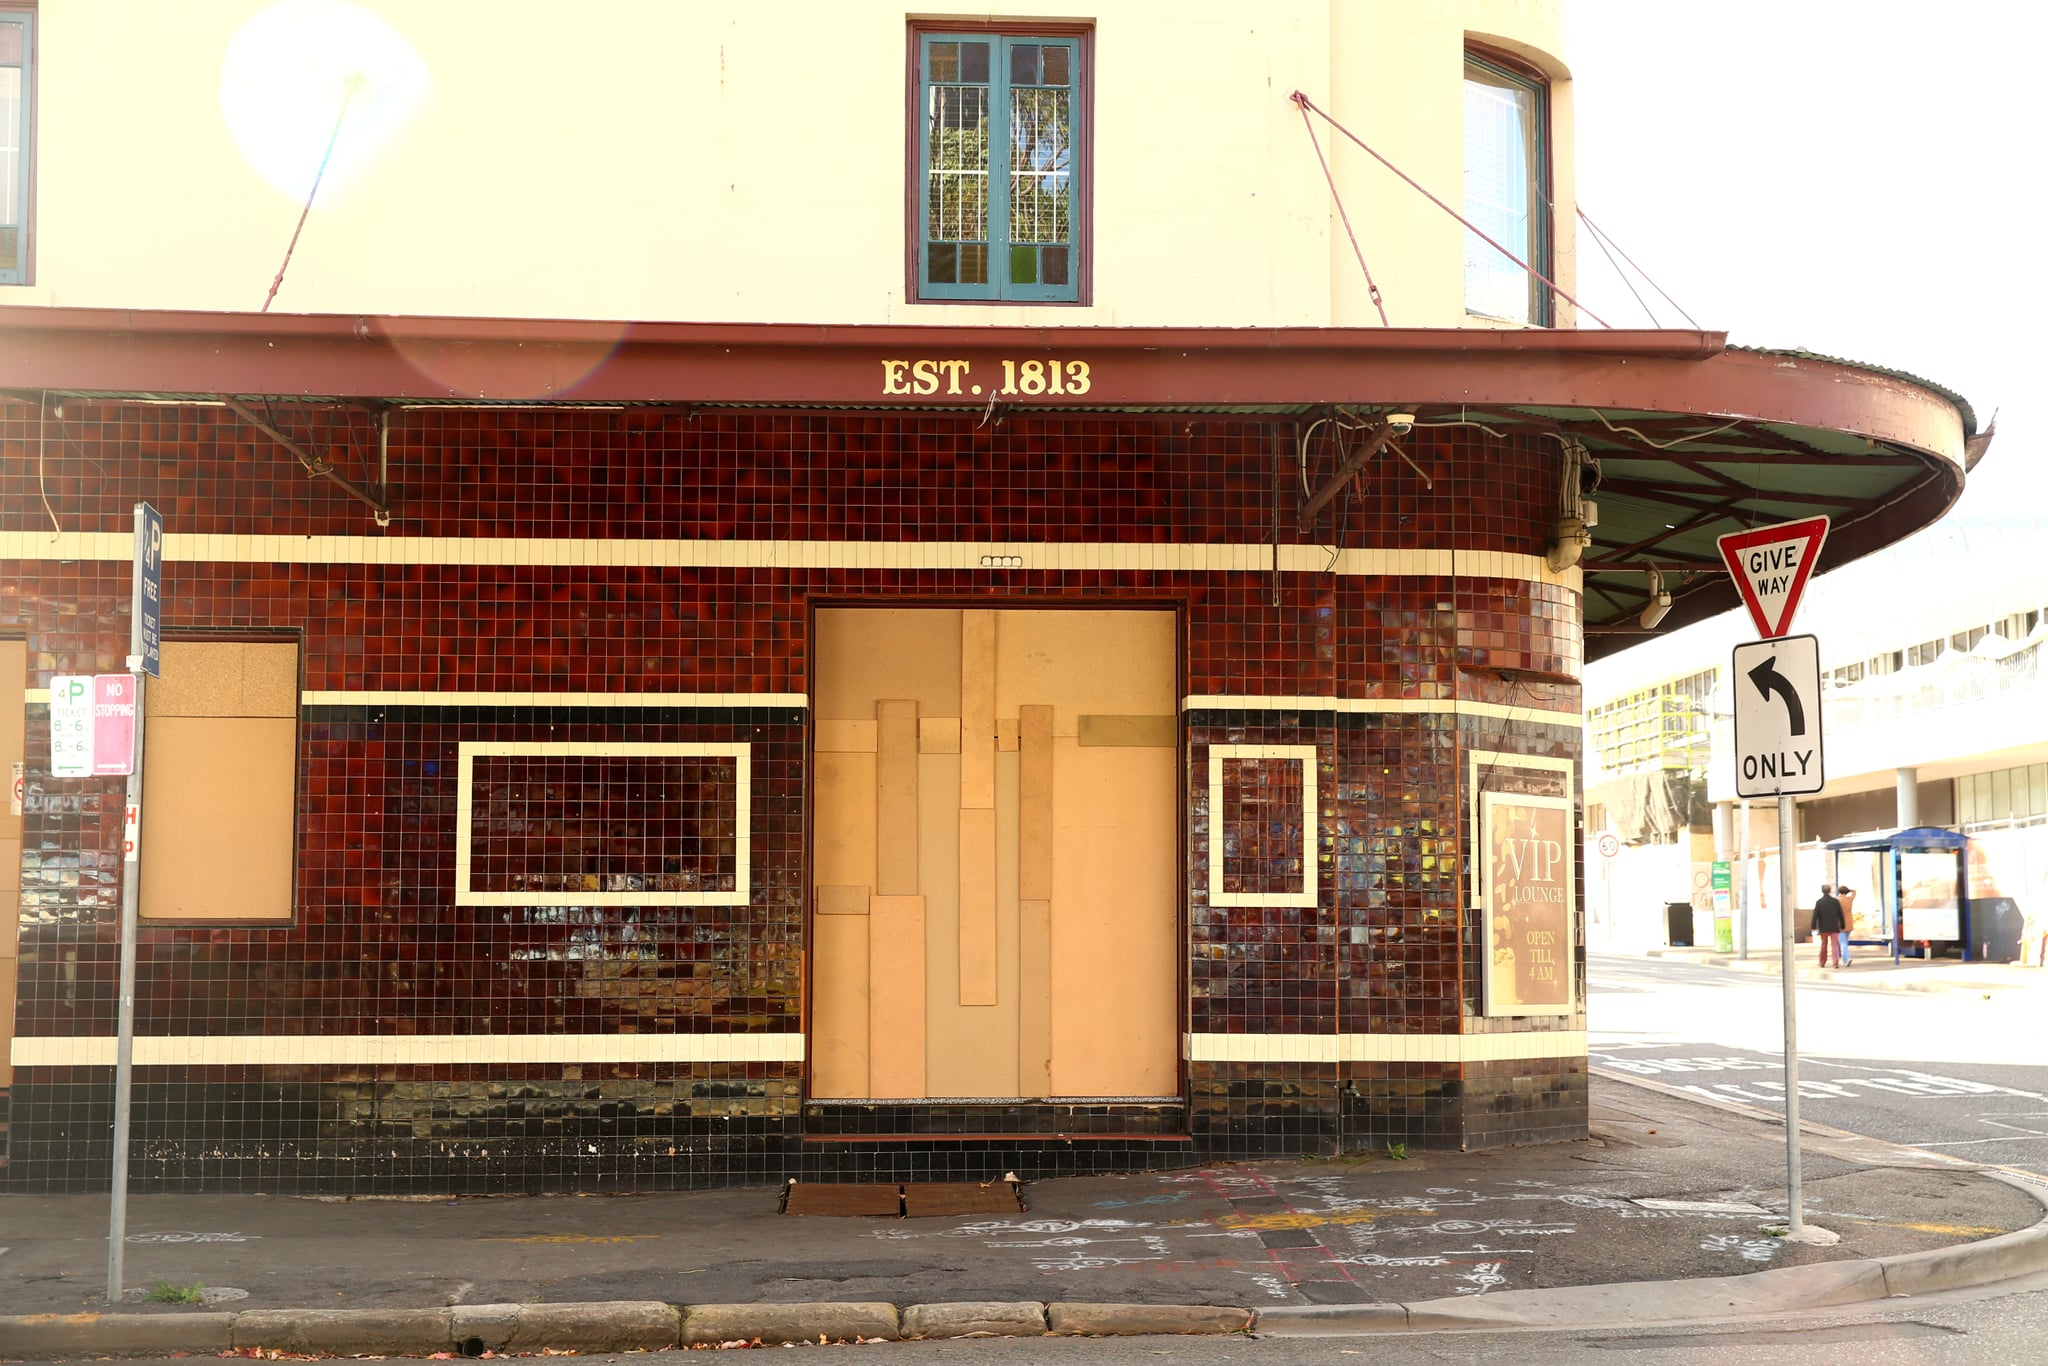 SYDNEY, AUSTRALIA - MAY 1:  An exterior view of the now closed Royal Oak Hotel, in the suburb of Parramatta is seen on May 1, 2020 in Sydney, Australia. Established in 1813, the hotel will be removed to enable the construction and operation of the Parramatta Light Rail, which is expected to open in 2023. (Photo by Matt Blyth/Getty Images)